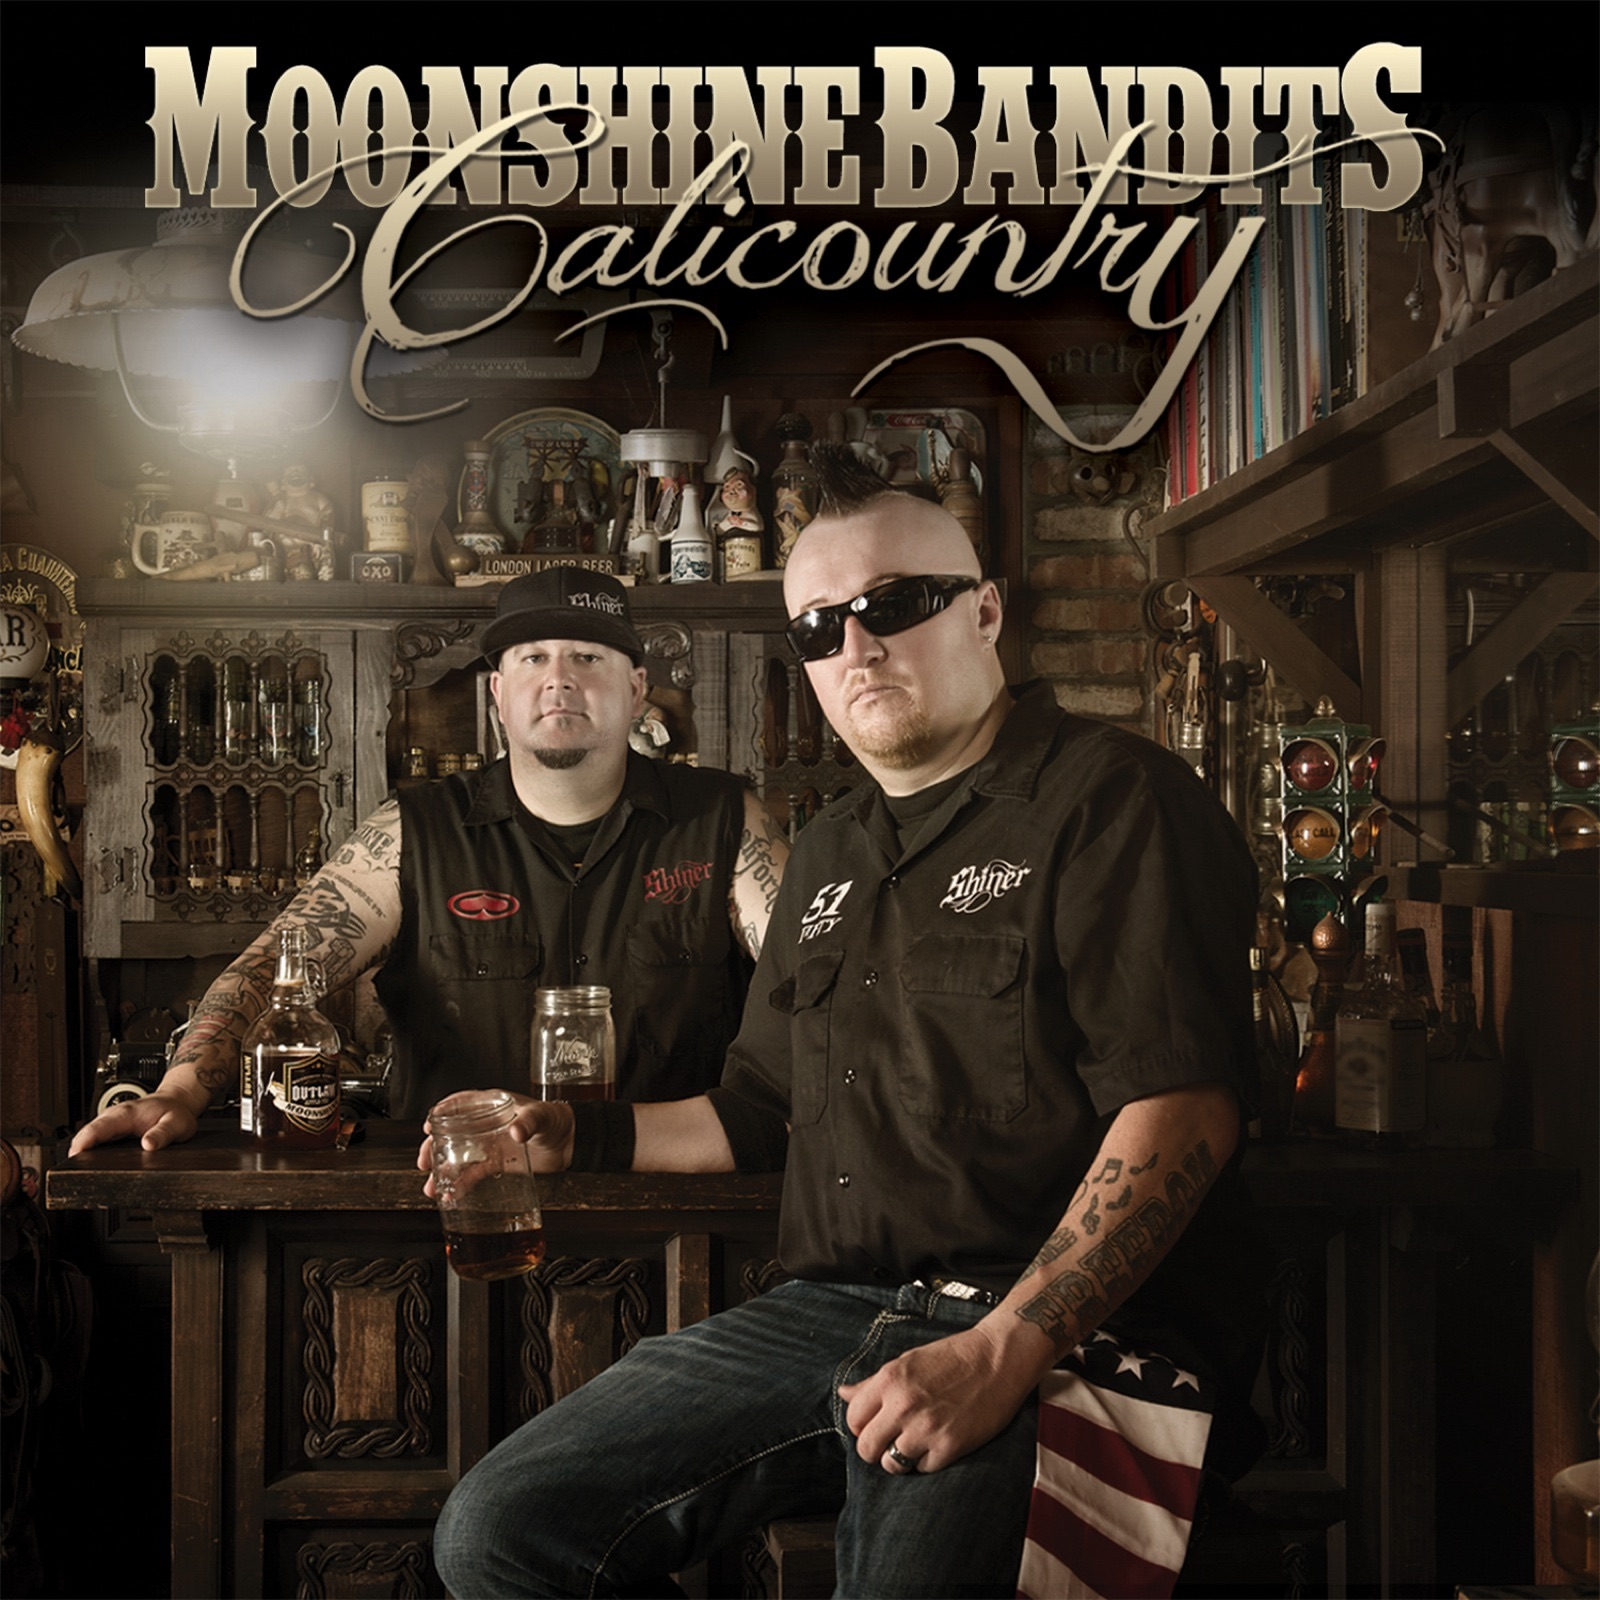 Calicountry By Moonshine Bandits On Itunes